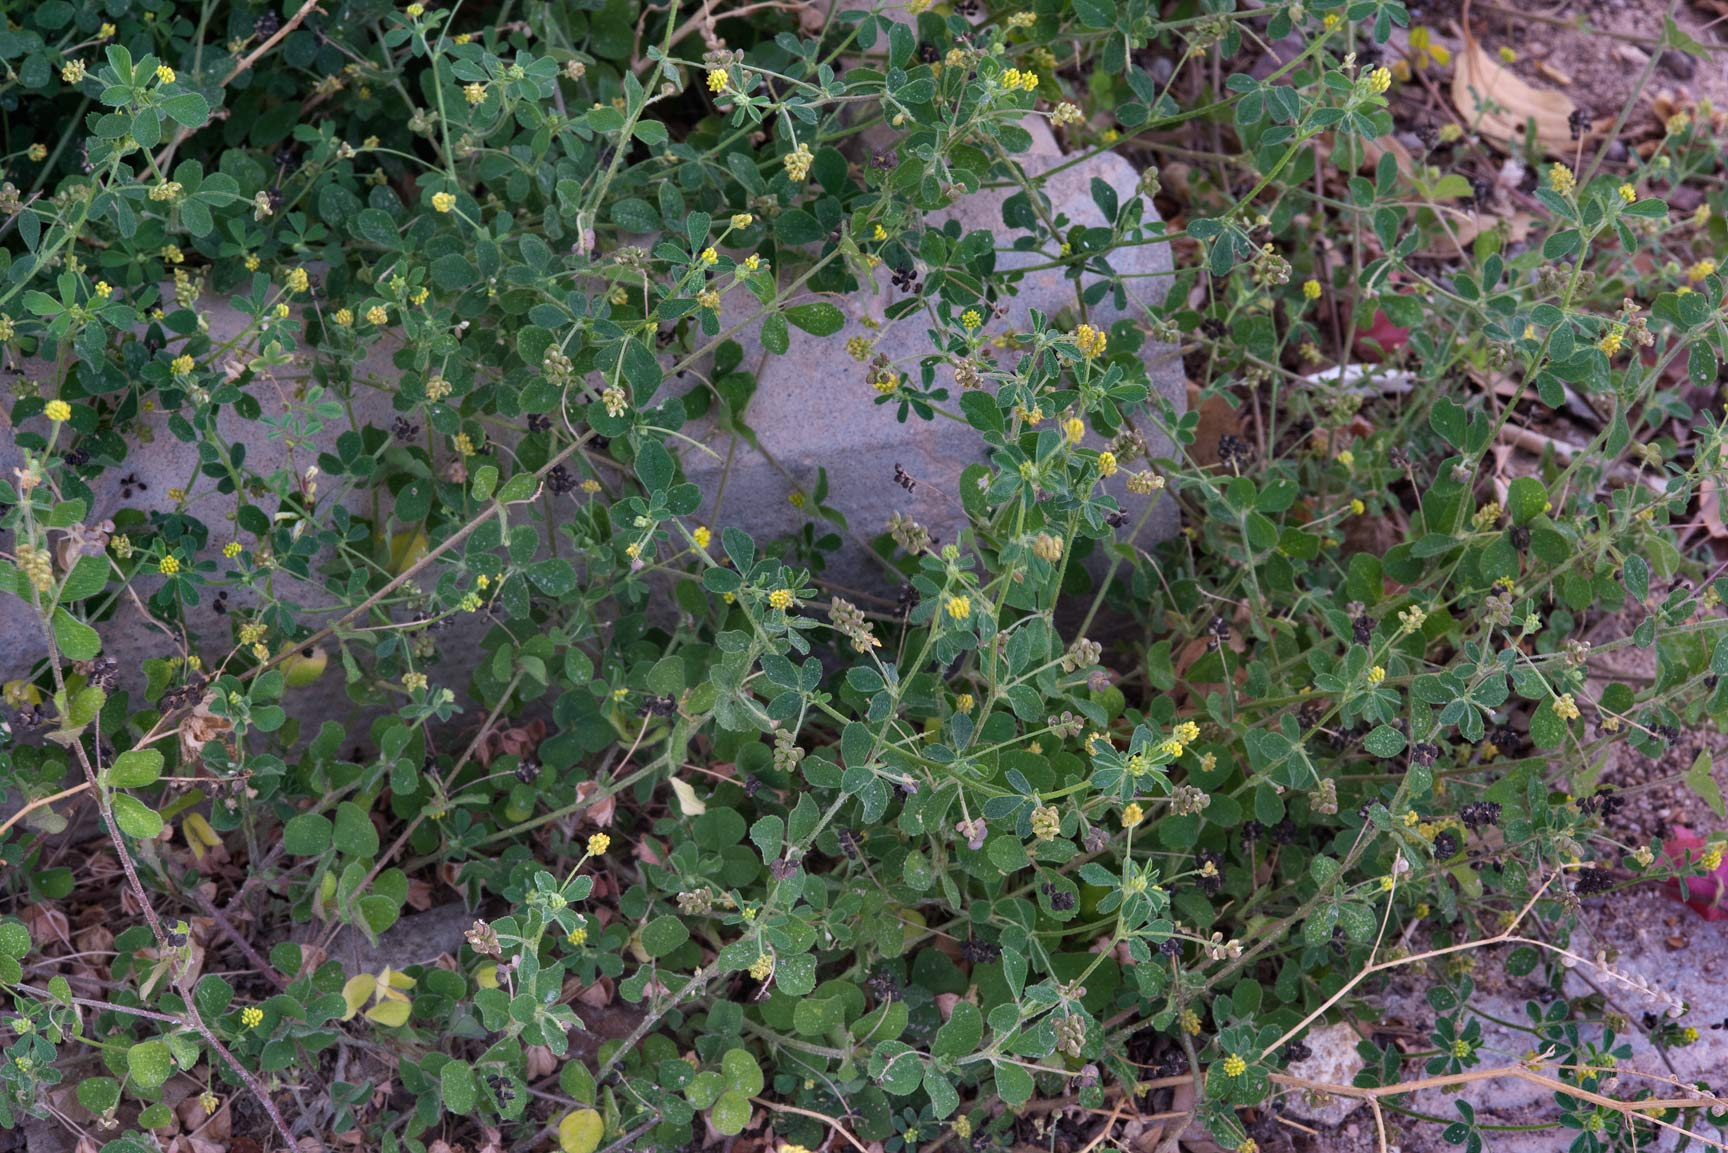 Black medick weeds (Medicago lupulina) growing at...Shabi St. in Onaiza area. Doha, Qatar